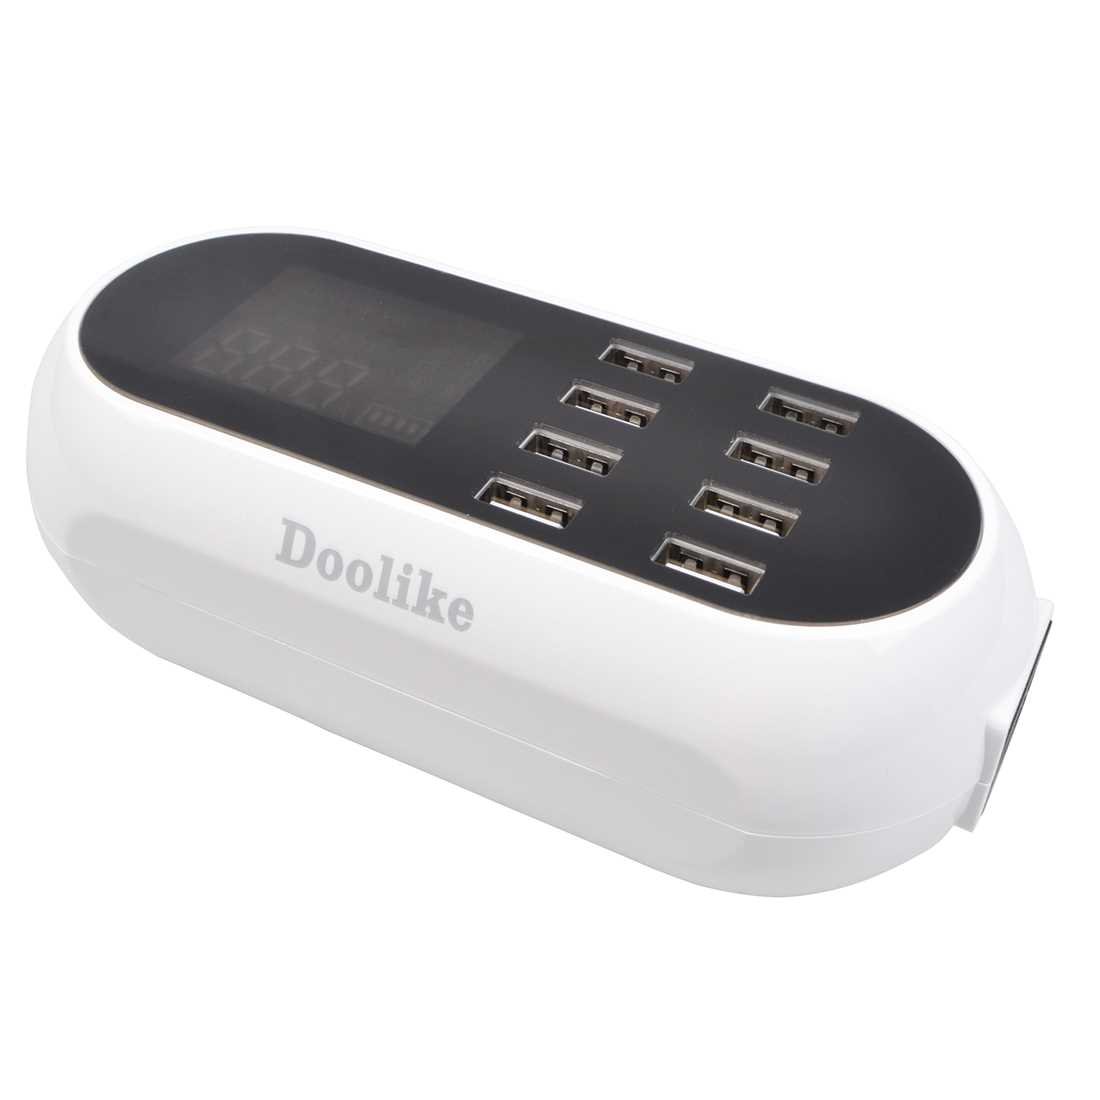 Doolike DL-CH18 Surge Protector 8 USB Ports Power Strip LCD Screen